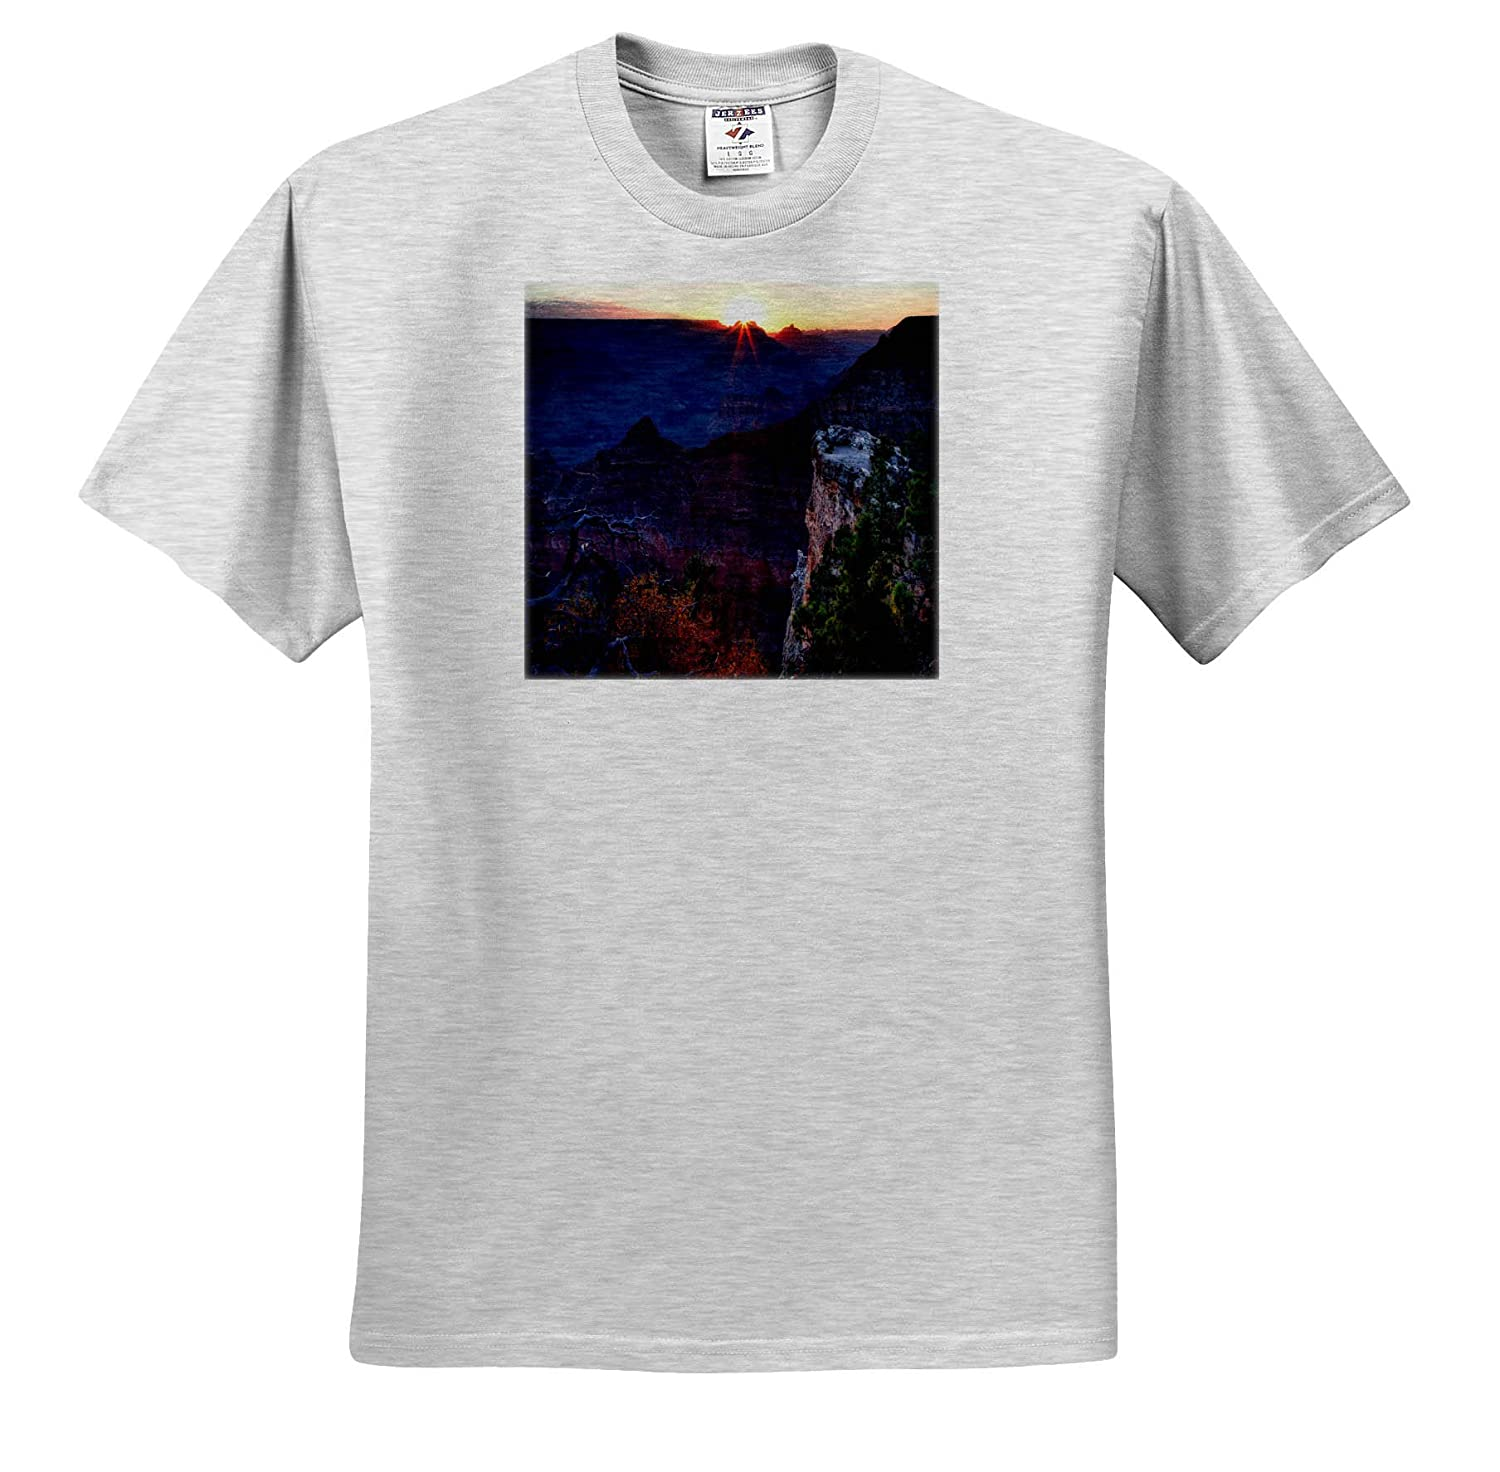 Sunrise Over The Canyon Landscapes 3dRose Mike Swindle Photography T-Shirts